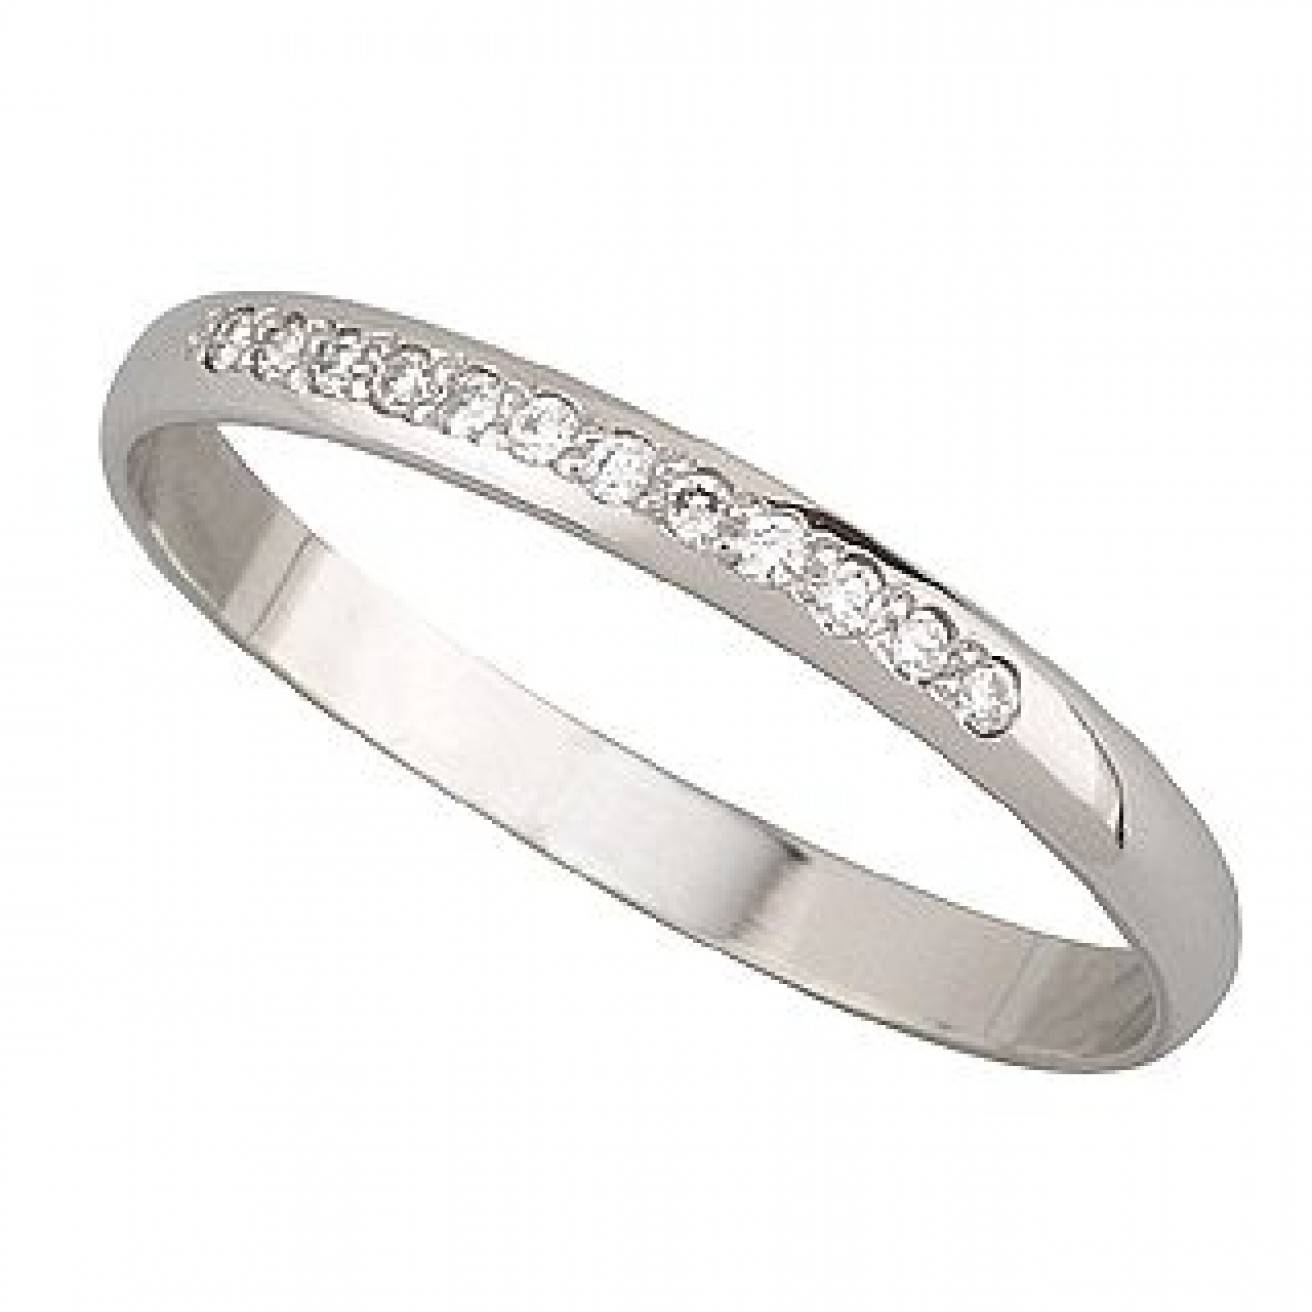 Buy Platinum Wedding Bands Online – Fraser Hart Within Platinum Diamond Wedding Rings (View 6 of 15)